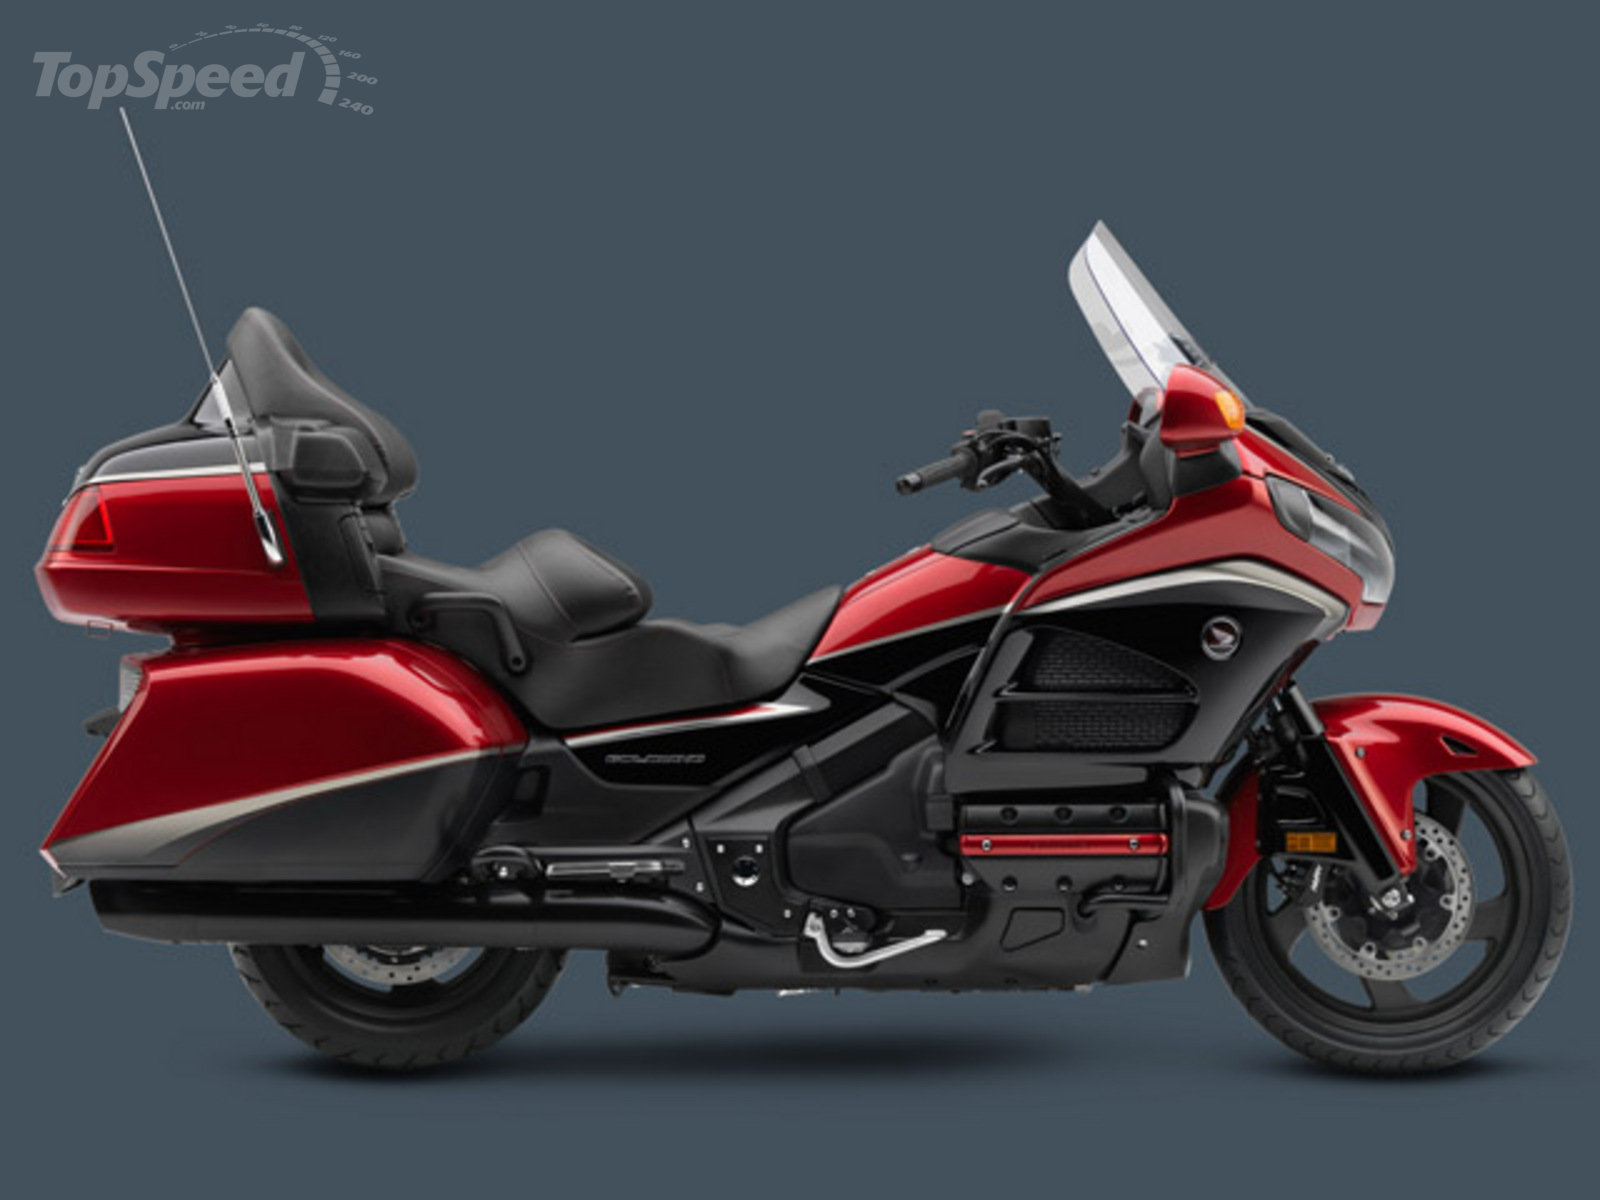 2015 Honda Gold Wing Review - Top Speed